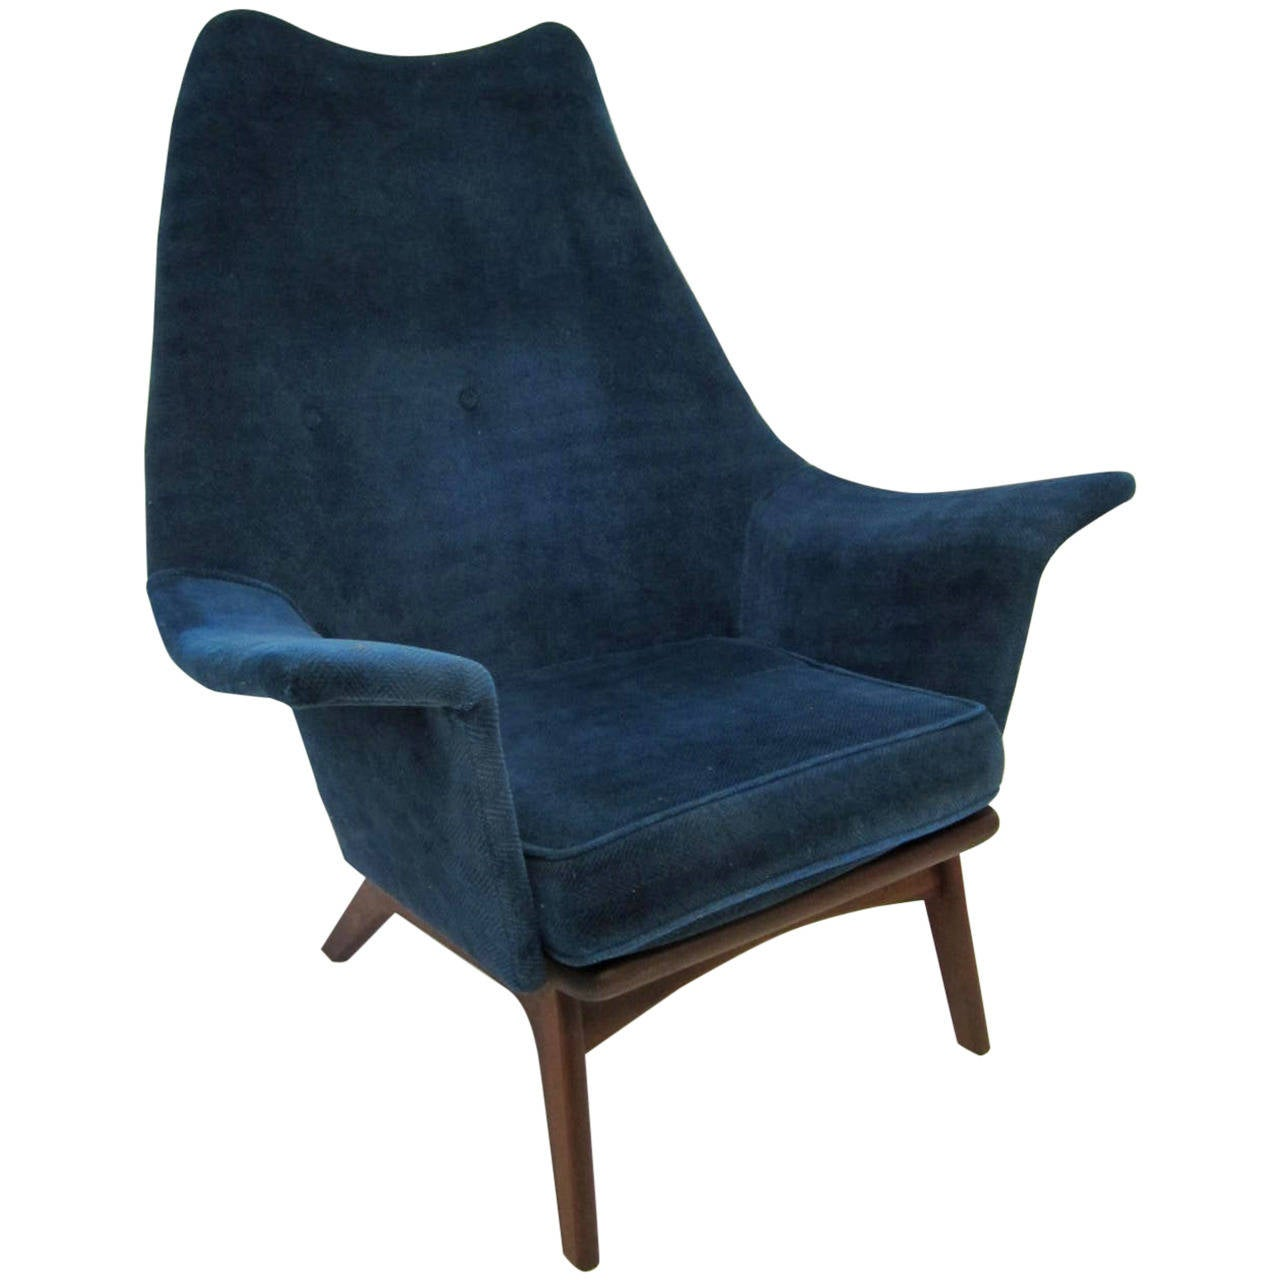 Excellent Adrian Pearsall Wingback Lounge Chair Mid